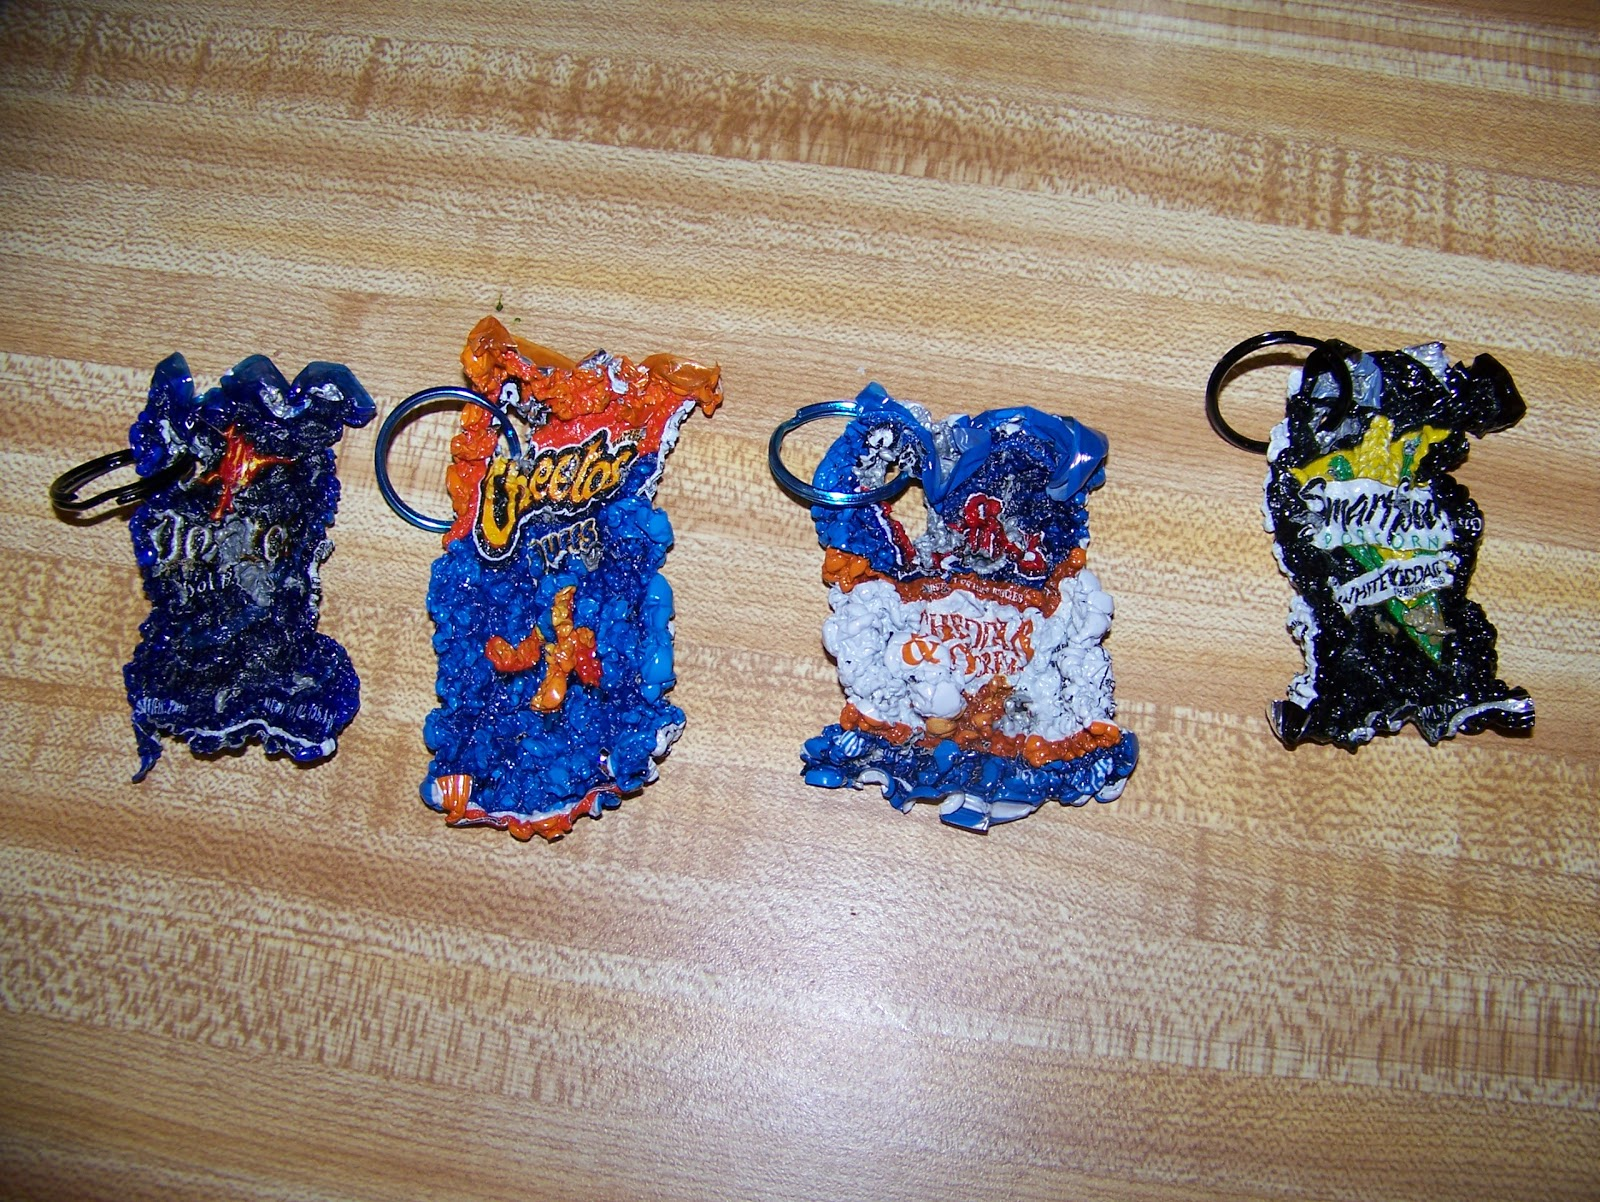 Making Cooley Stuff Chip Bag Shrinky Dink Key Chains